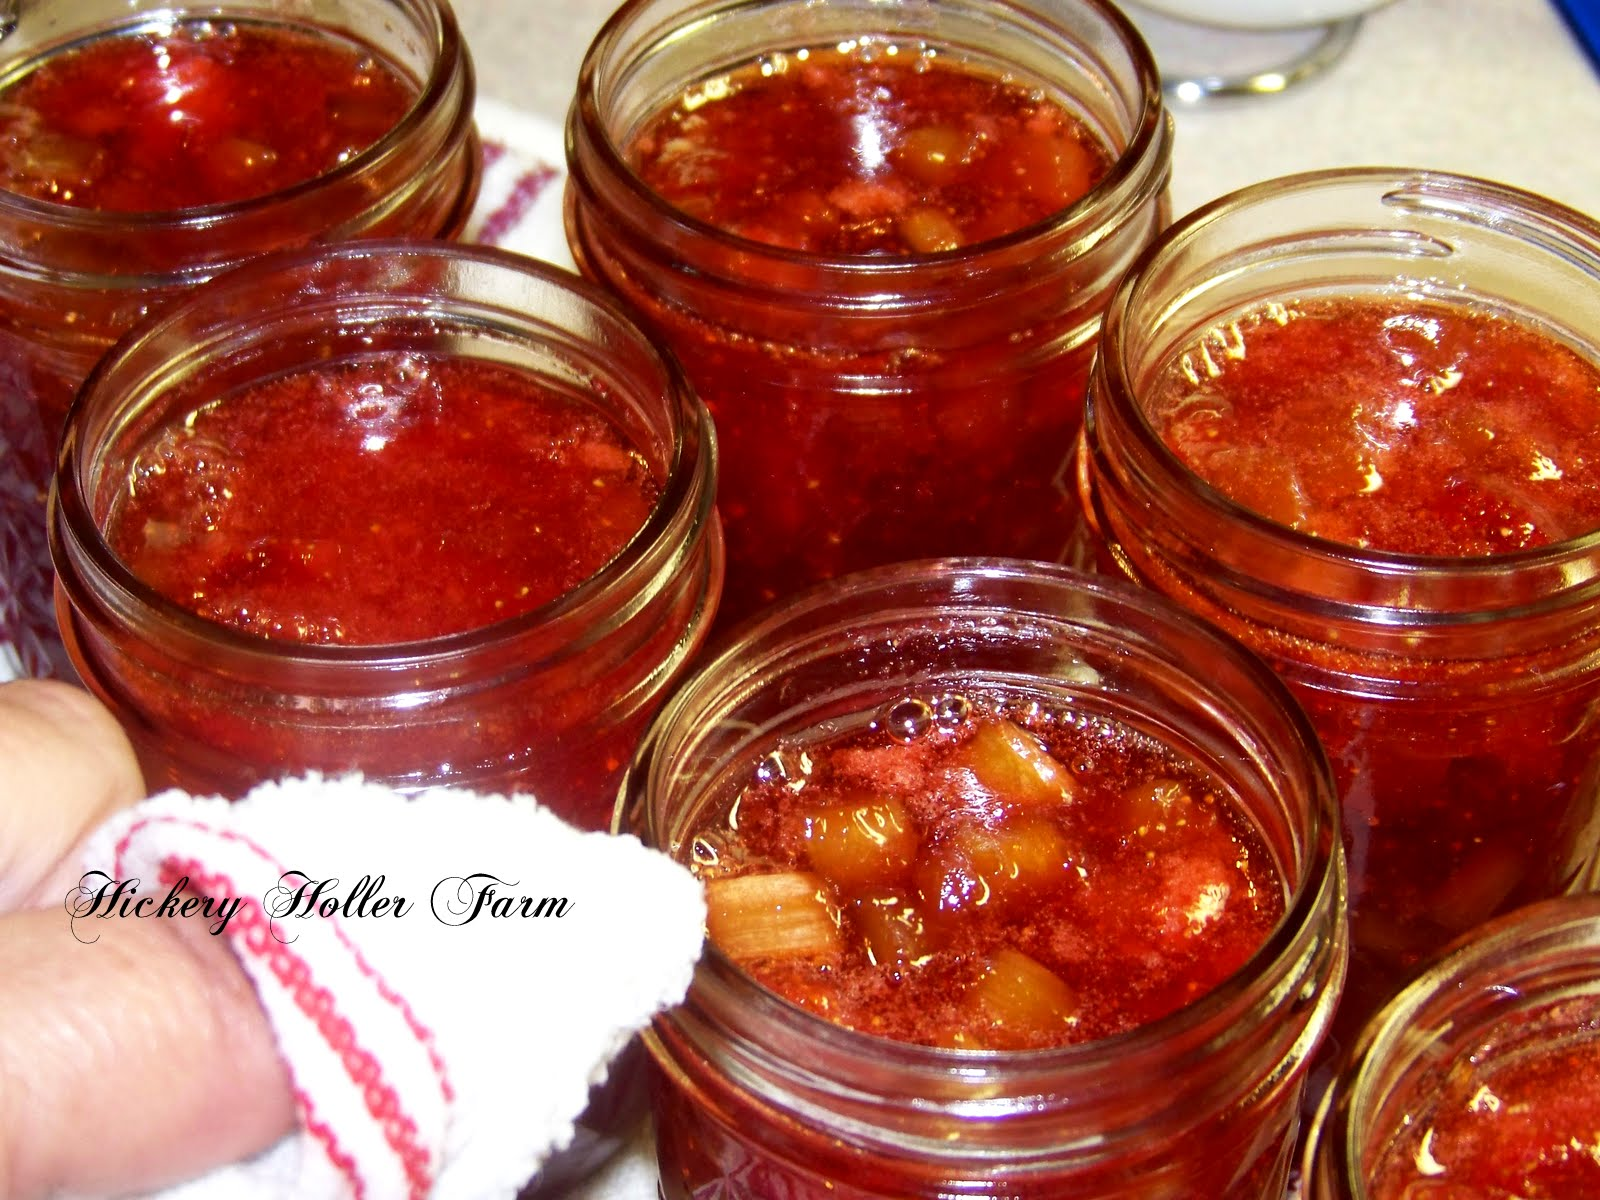 Hickery Holler Farm: Strawberry Rhubarb Jam